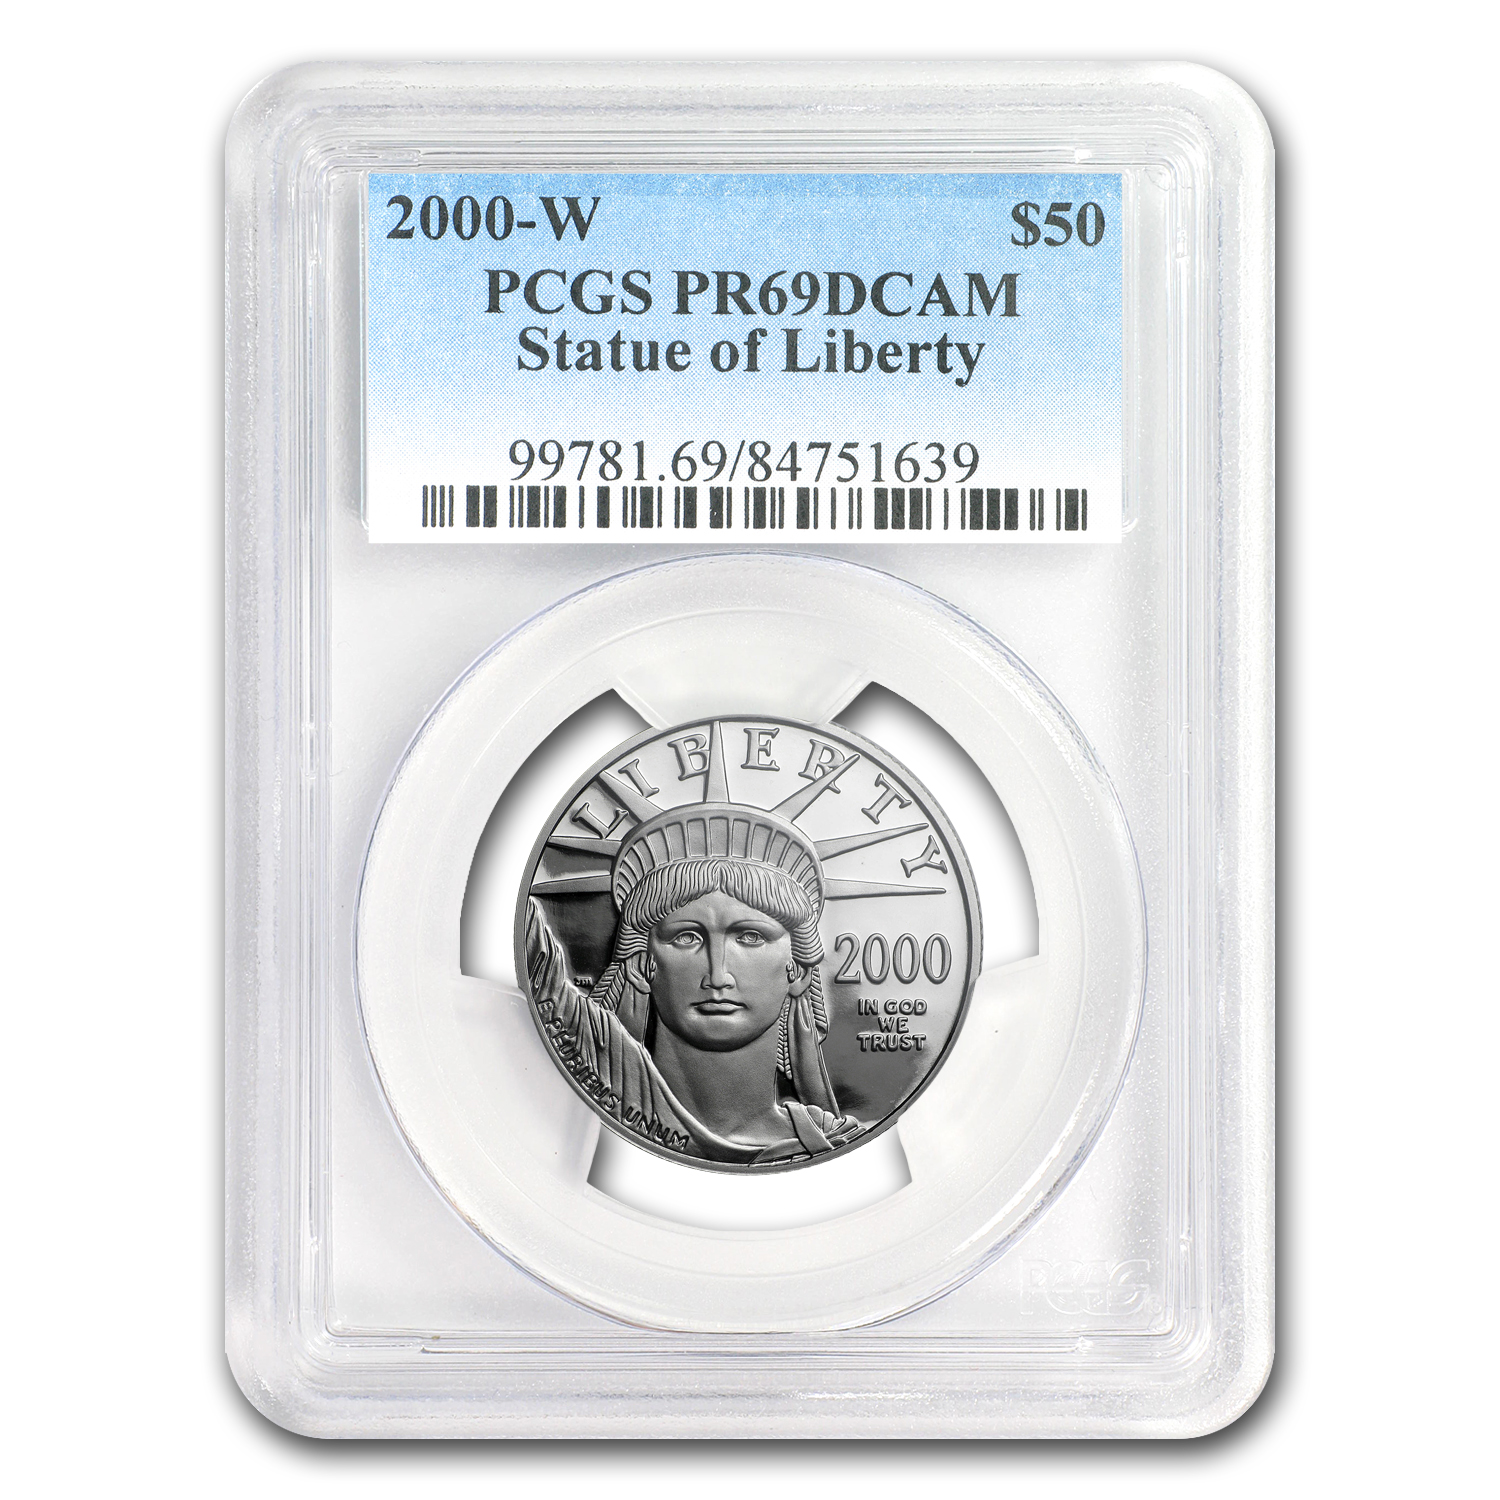 2000-W 1/2 oz Proof Platinum American Eagle PR-69 PCGS